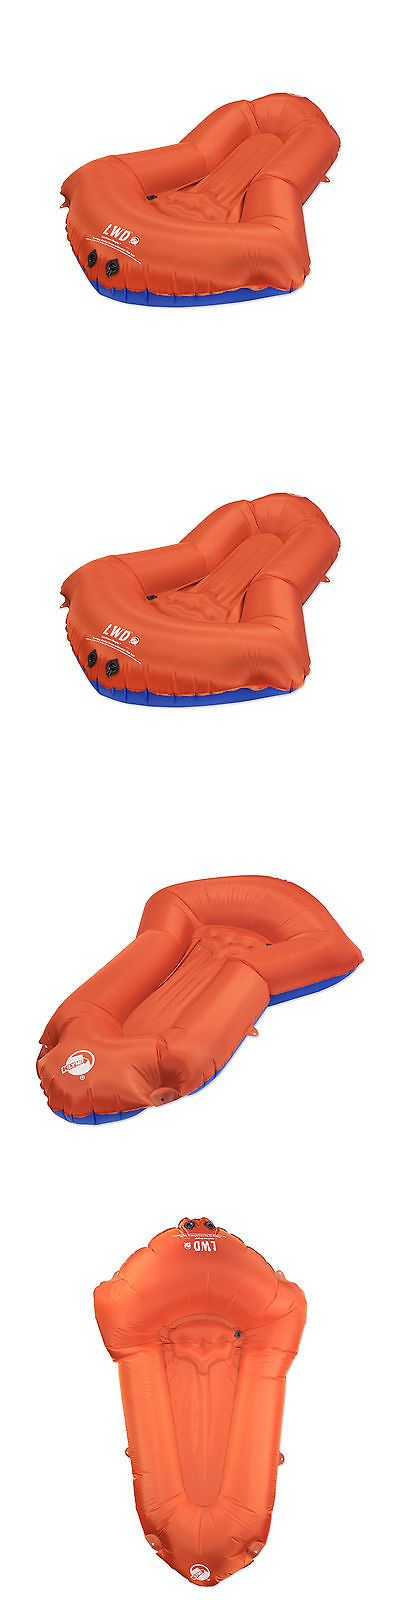 Other Bottles and Hydration 181410: Klymit Light Water Dinghy Pack Raft -> BUY IT NOW ONLY: $169.95 on eBay!